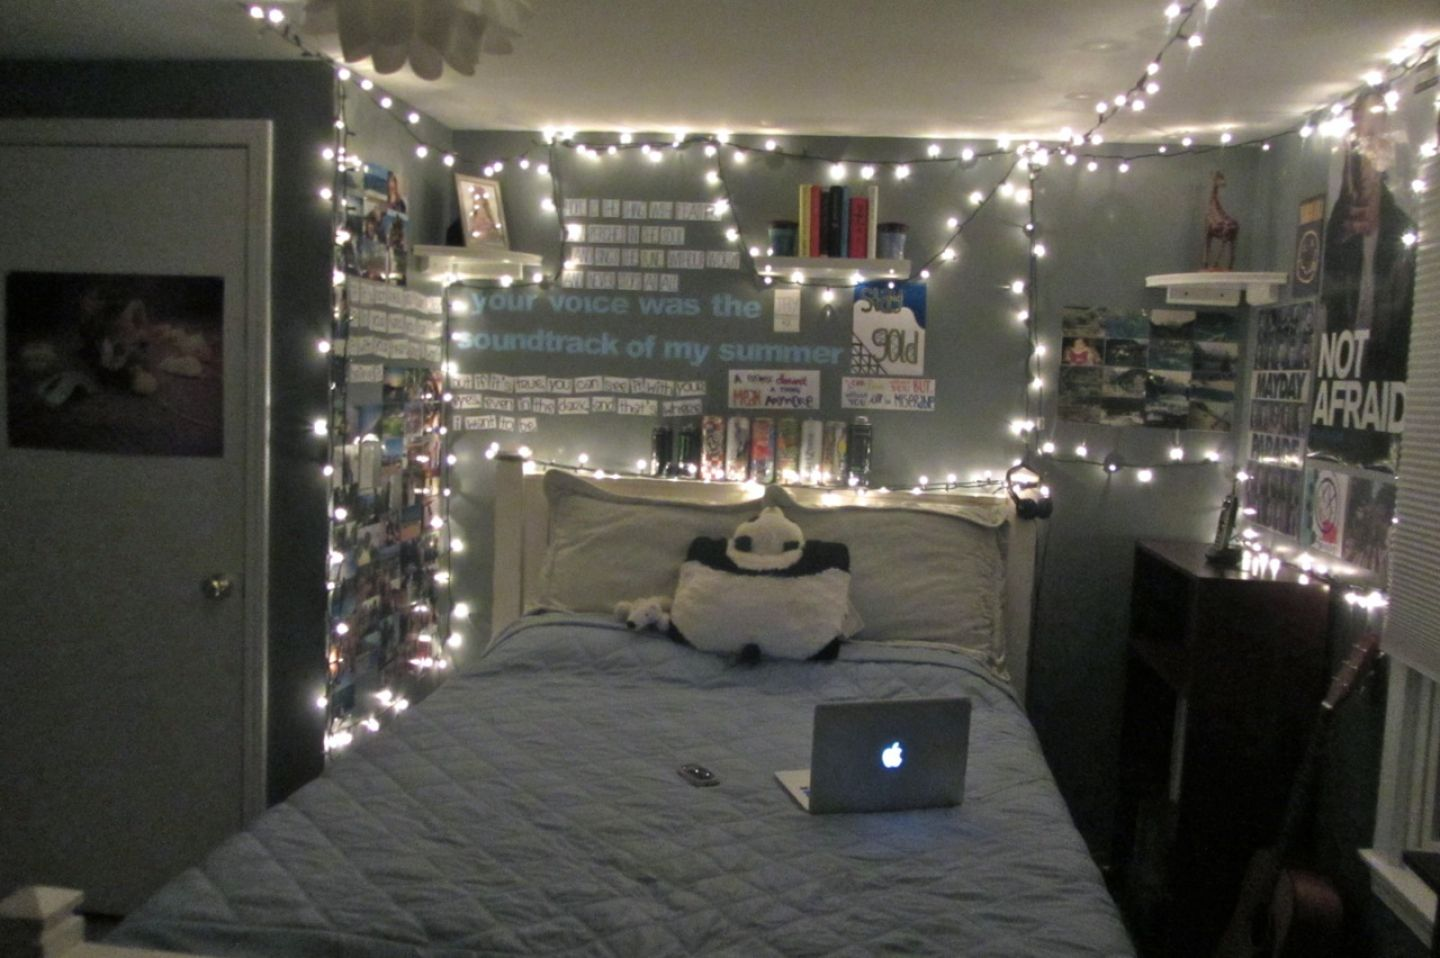 Cool rooms tumblr - Bedroom Tumblr Girl Bedrooms With Awesome Light And Imac On The Bed Cool Bedrooms Tumblr Design